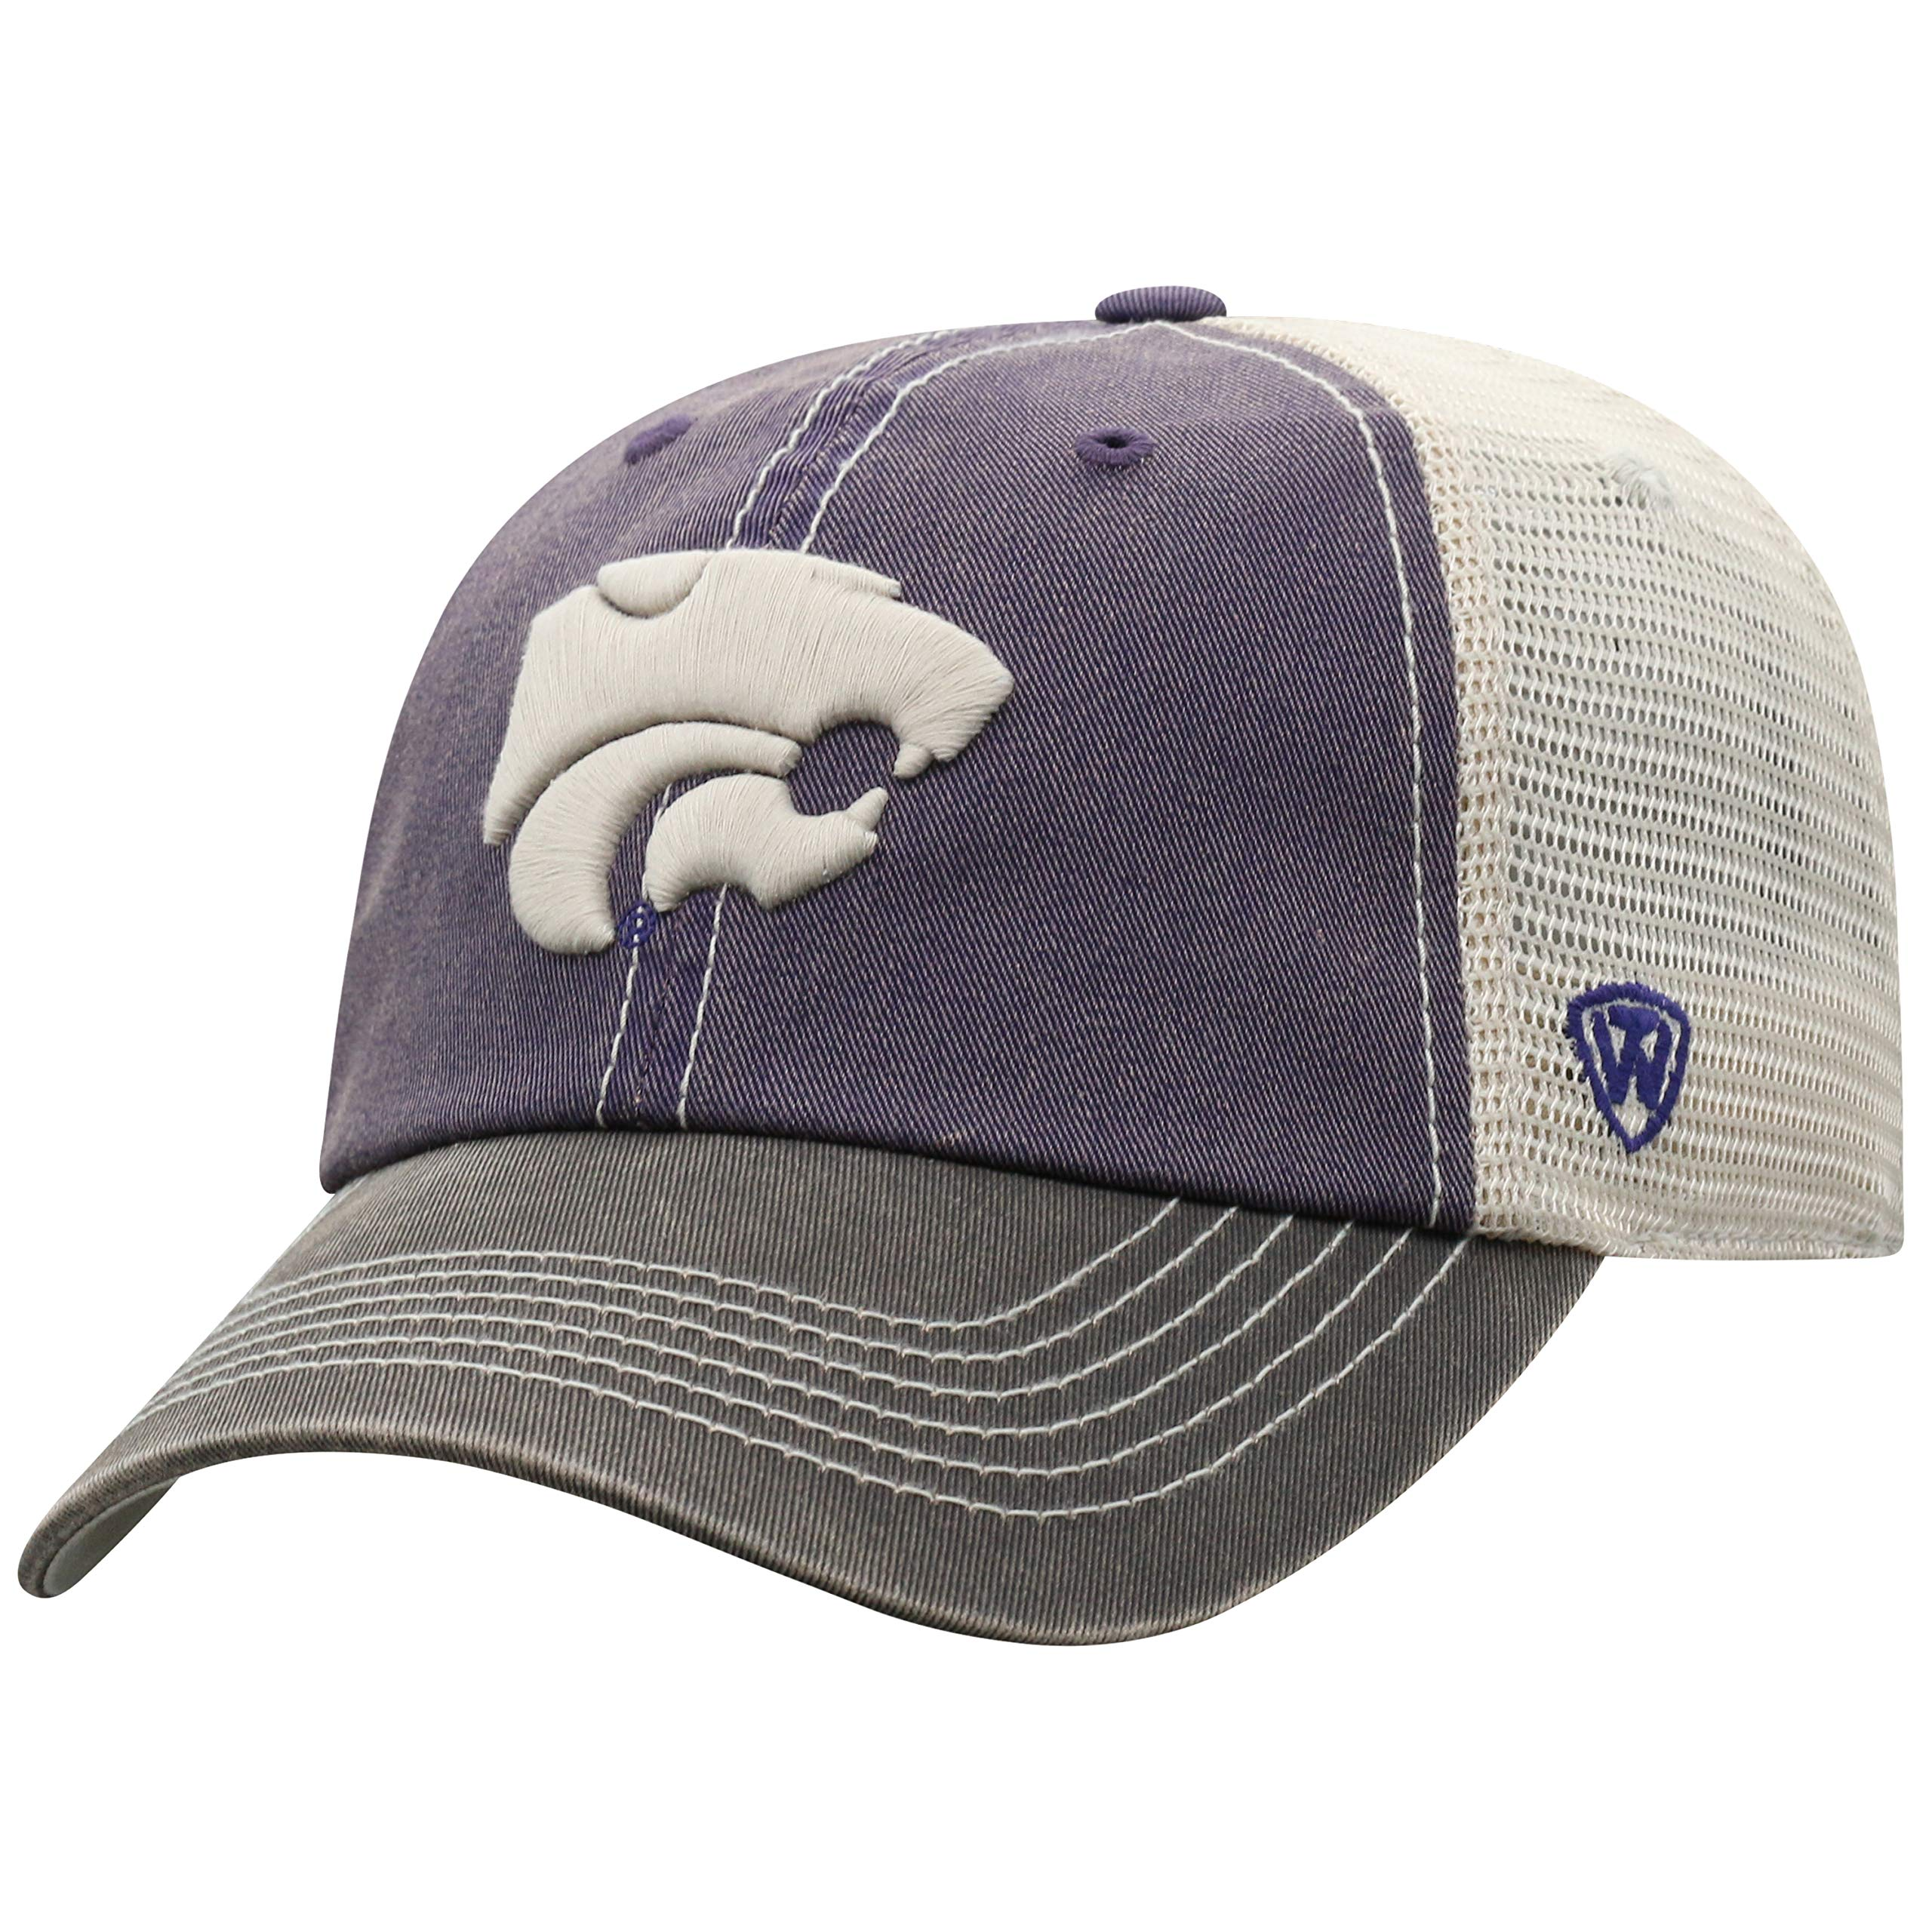 Top of the World NCAA Kansas State Wildcats Offroad Snapback Mesh Back Adjustable Hat, One Size, Purple/Charcoal/Khaki